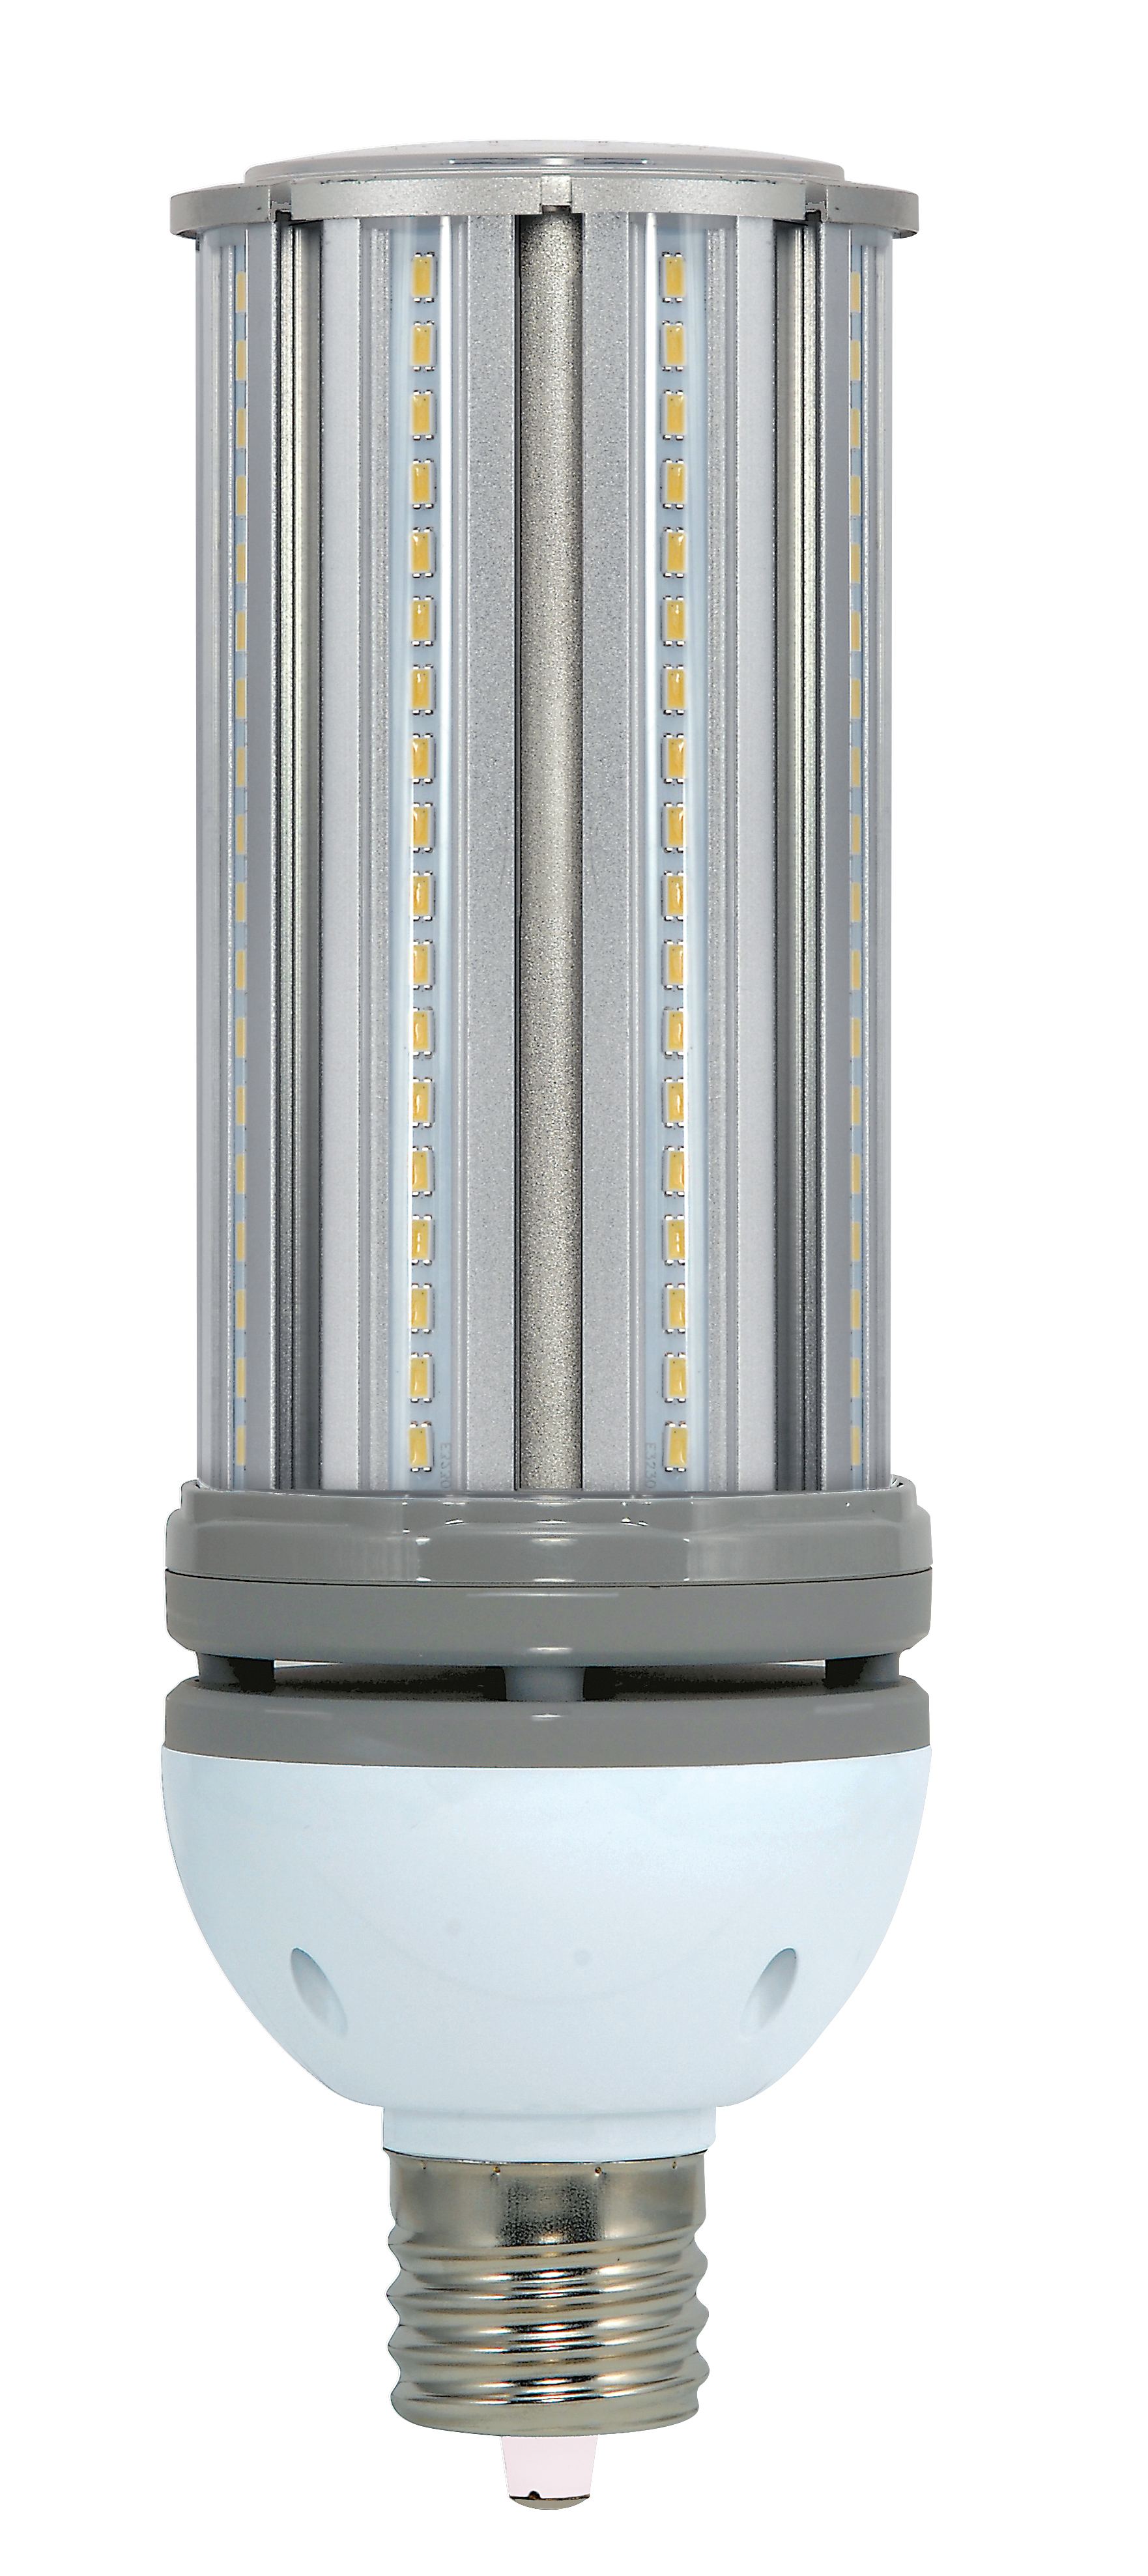 Satco,S9394,SATCO® S9394 Post Top LED Lamp, 54 W, Mogul Extended EX39 Lamp Base, 7200 Lumens